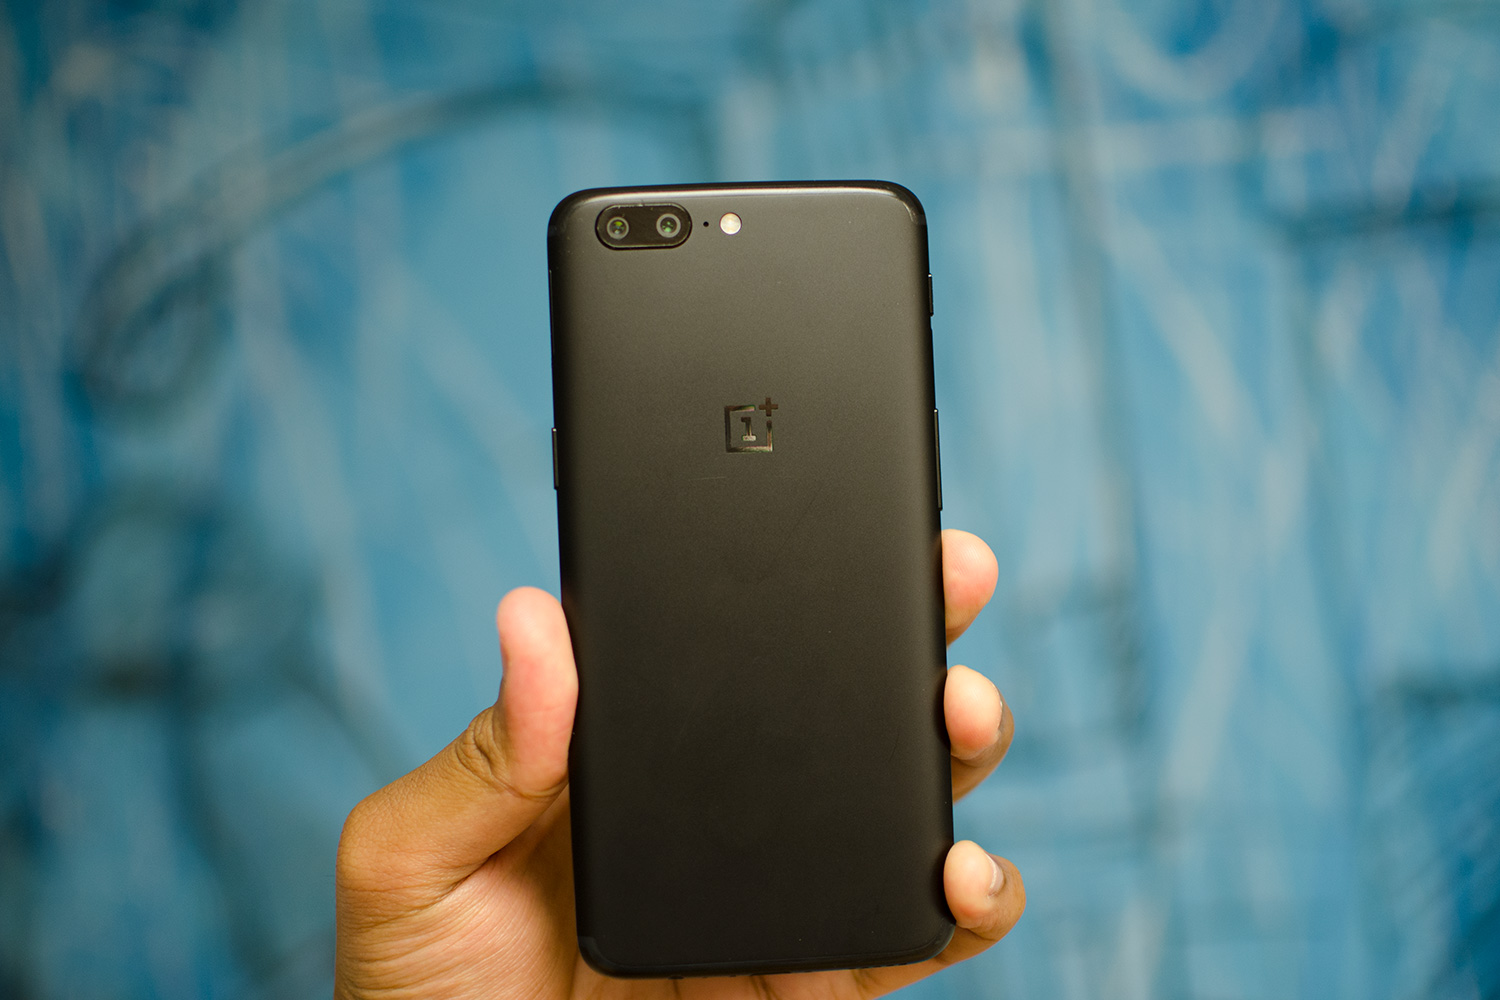 OnePlus 5 Review: Is it Worth It?